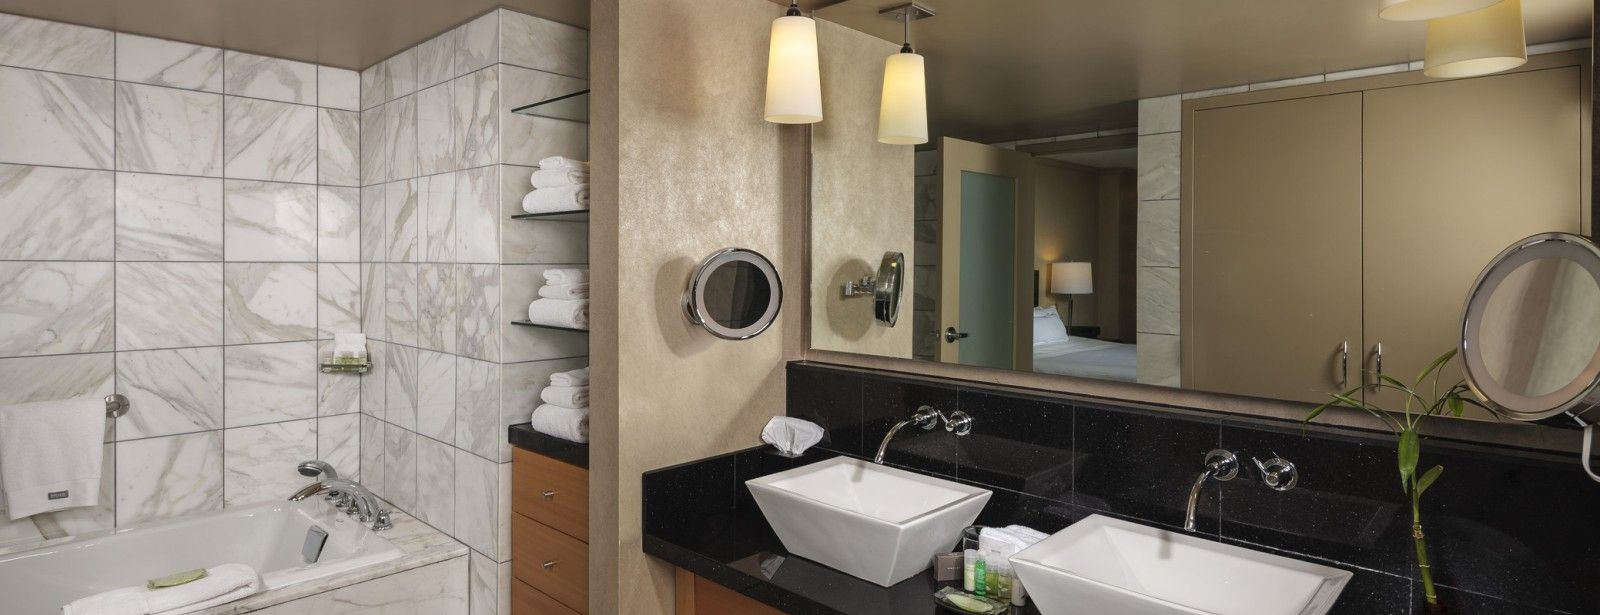 Bathroom | The Westin Detroit Metropolitan Airport Hotel